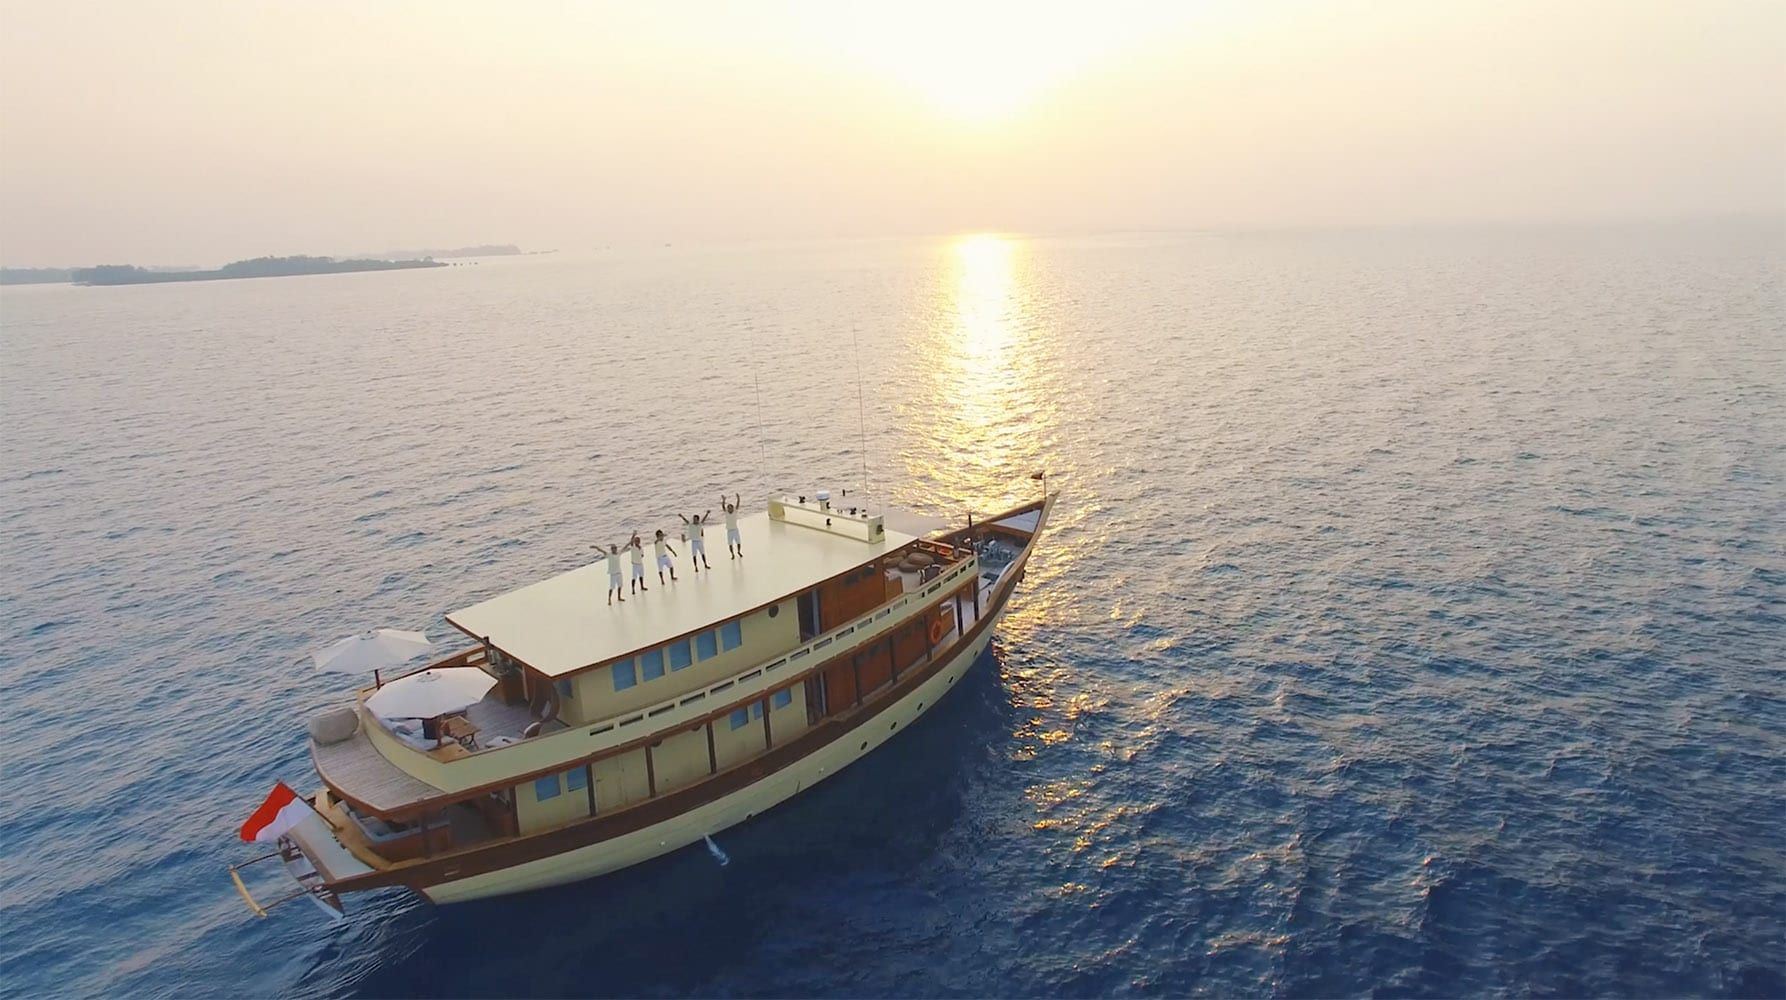 Mischief - Luxury Indonesian Yacht Charter